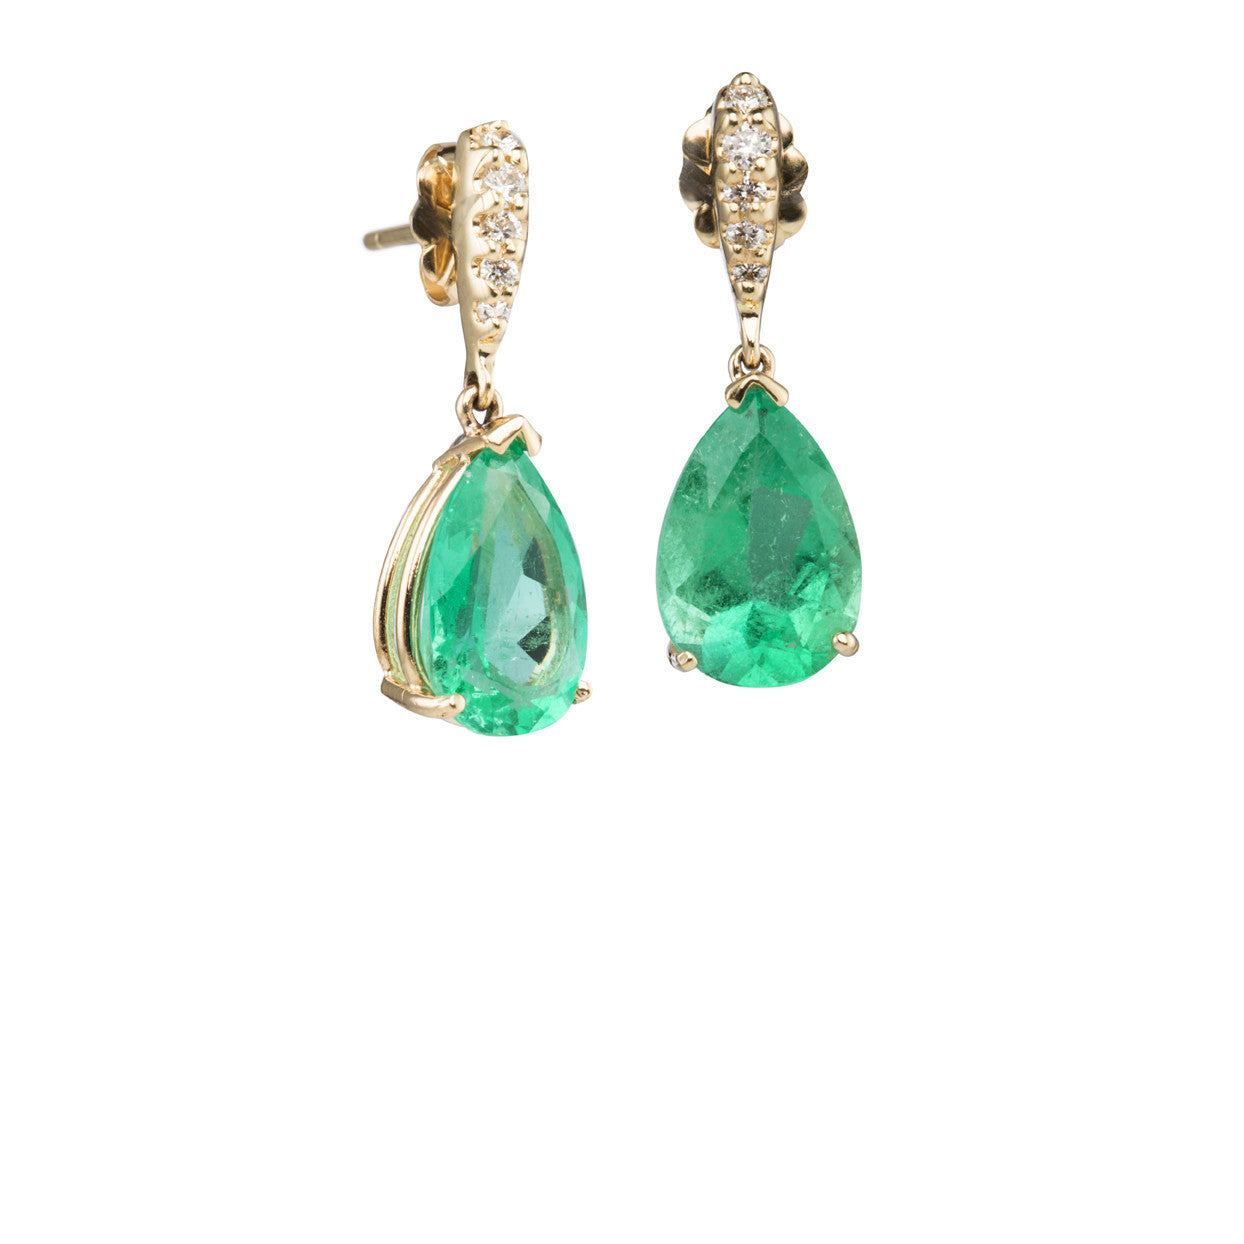 Eire Emerald Earrings are soothing green emeralds accented with diamond tops in 18k yellow gold.